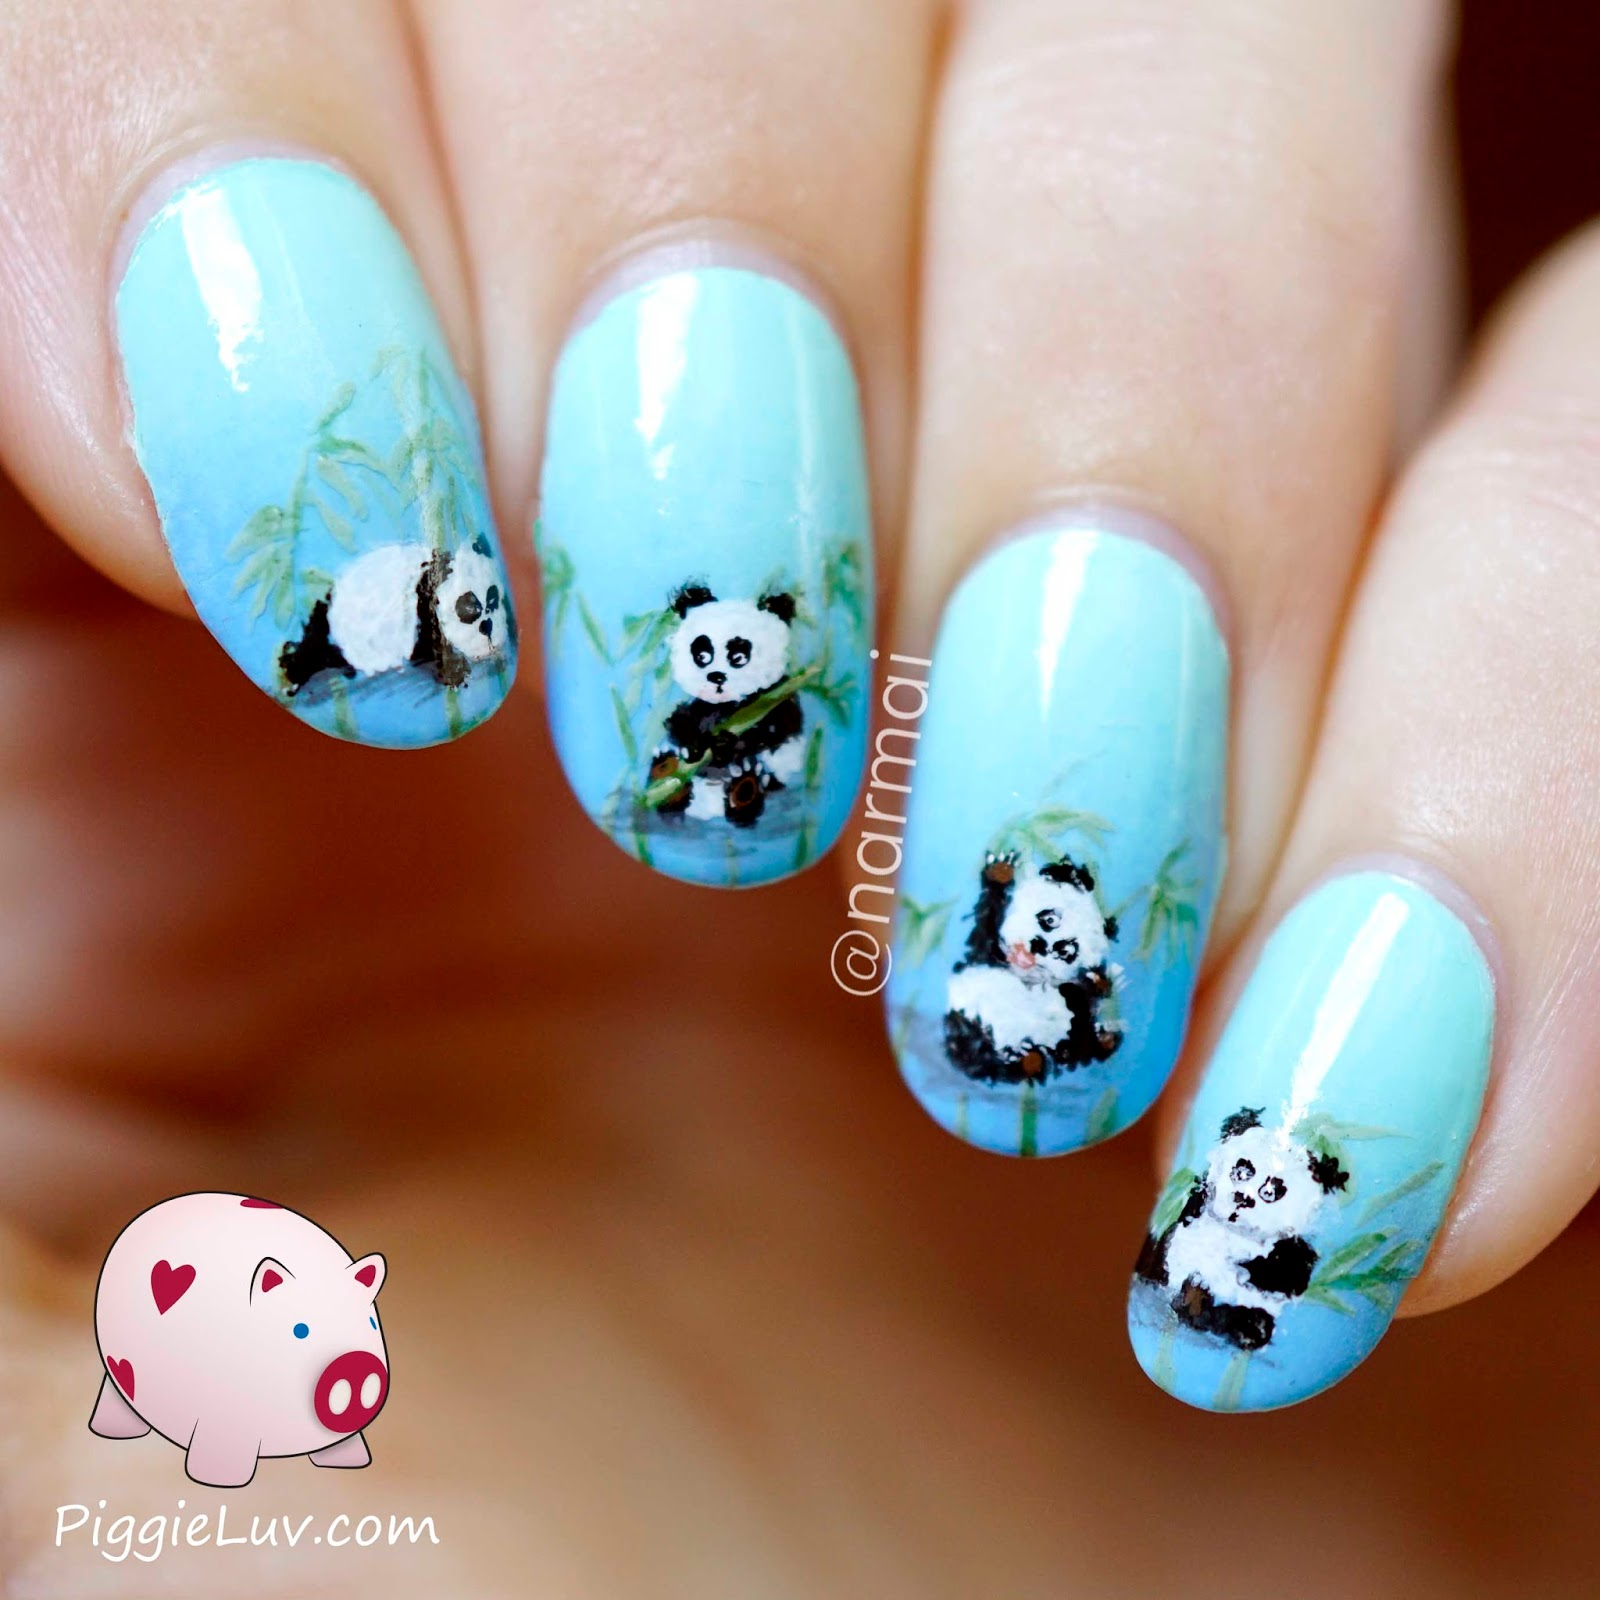 Piggieluv panda babies nail art who doesnt love panda babies theyre fluffy cute and clumsy so they always make me laugh i gave them some bamboo in the background to munch on i prinsesfo Images